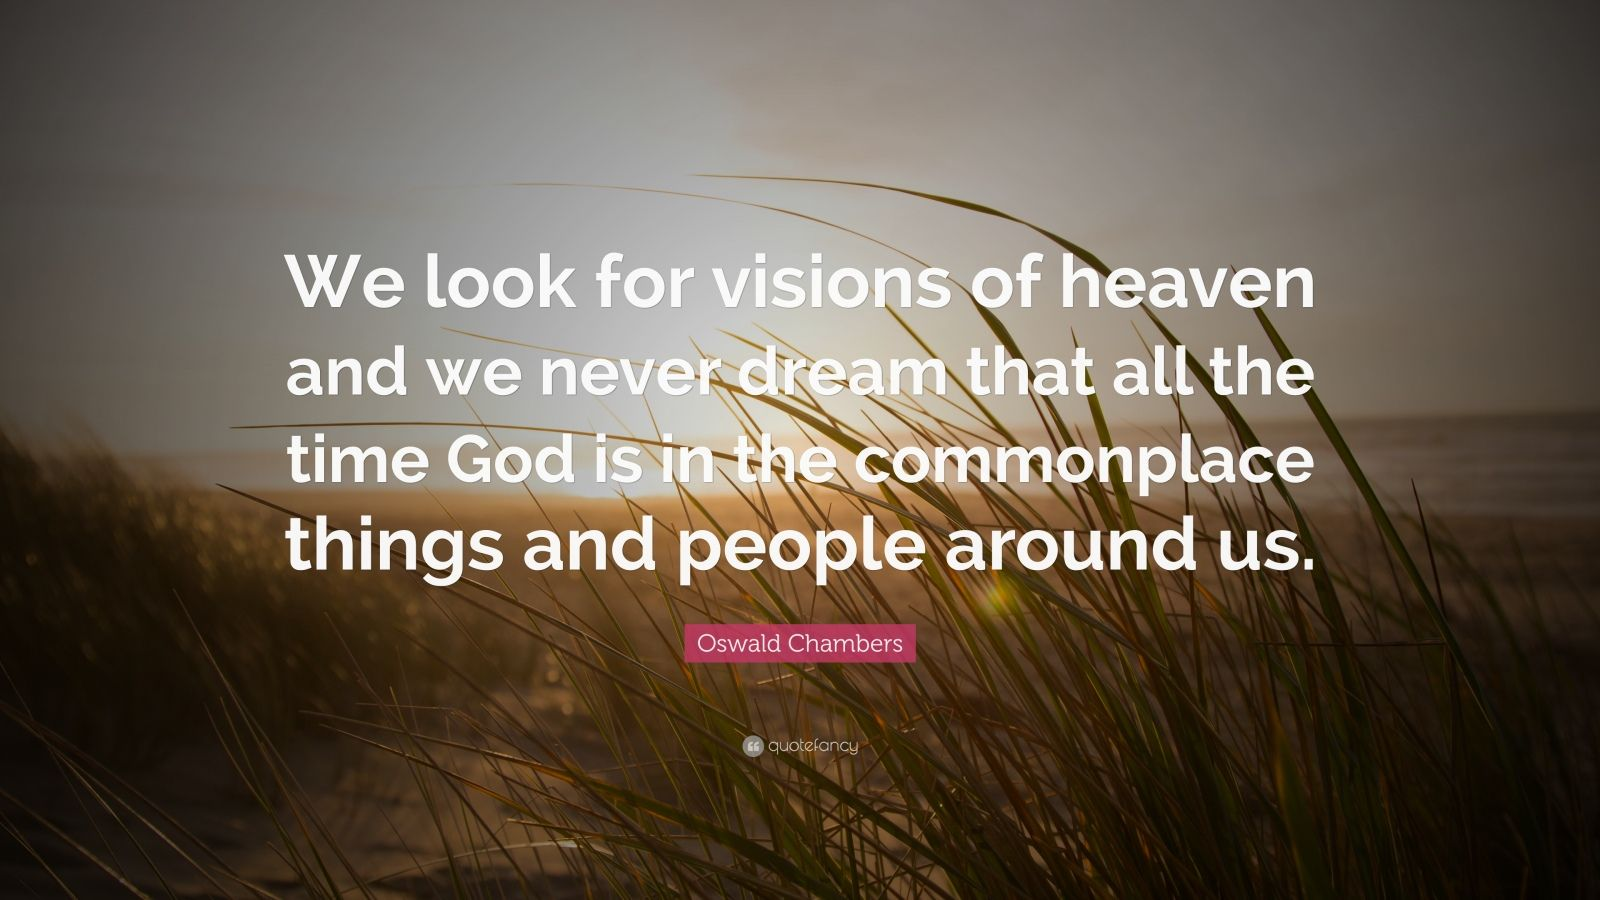 "Oswald Chambers Quote: ""We look for visions of heaven and we never dream that all the time God is in the commonplace things and people around us."""